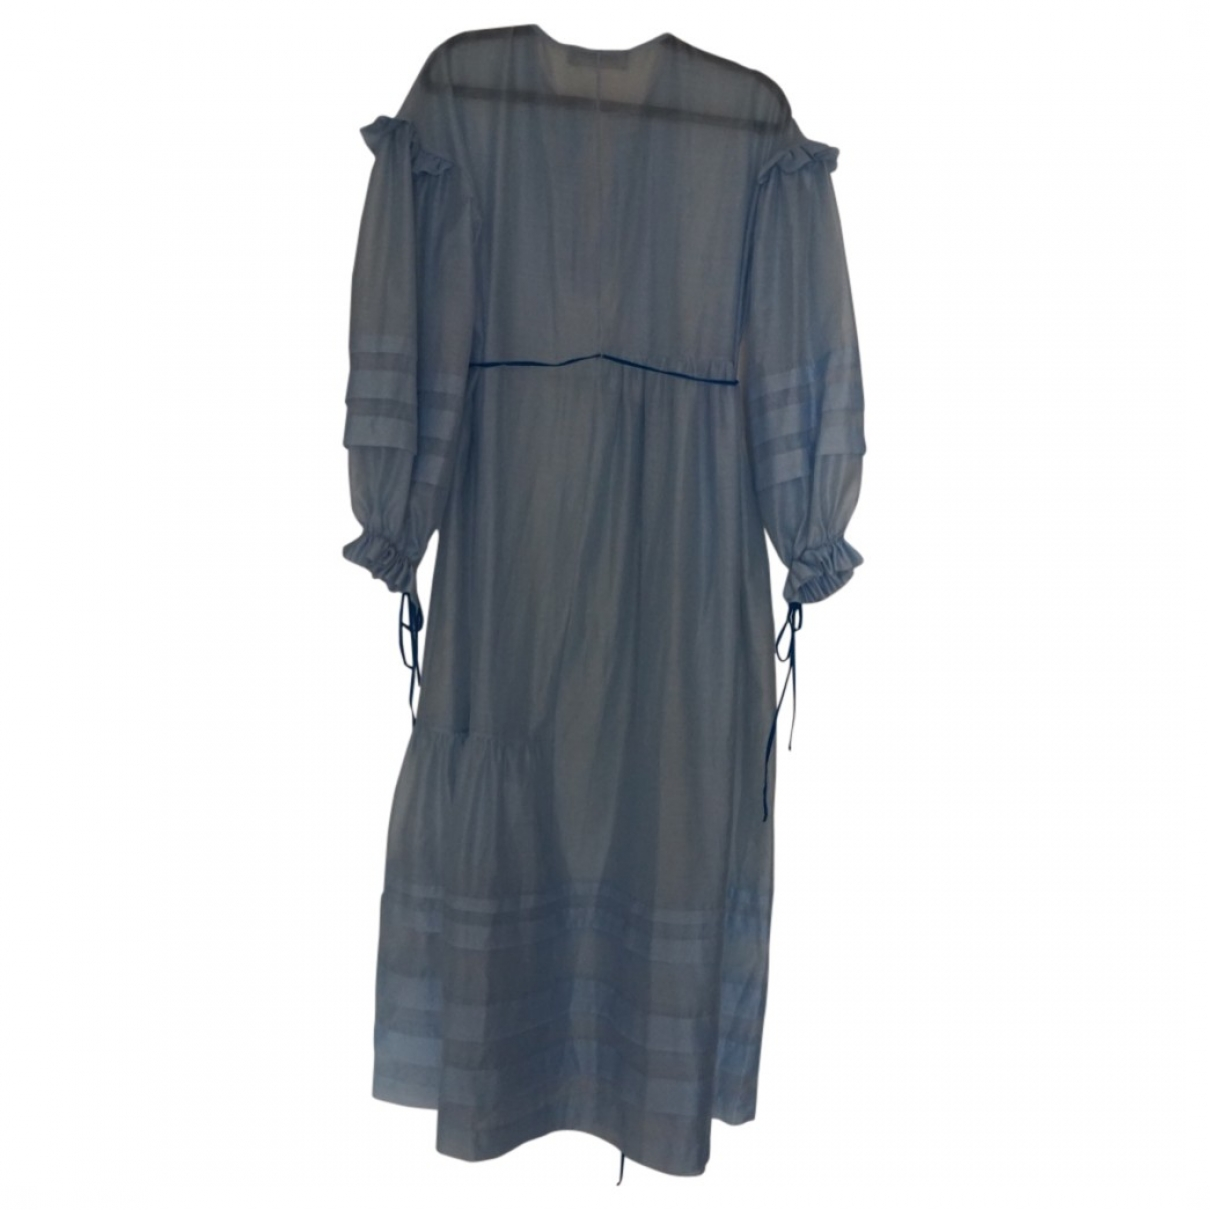 Anna October \N Blue dress for Women XS International